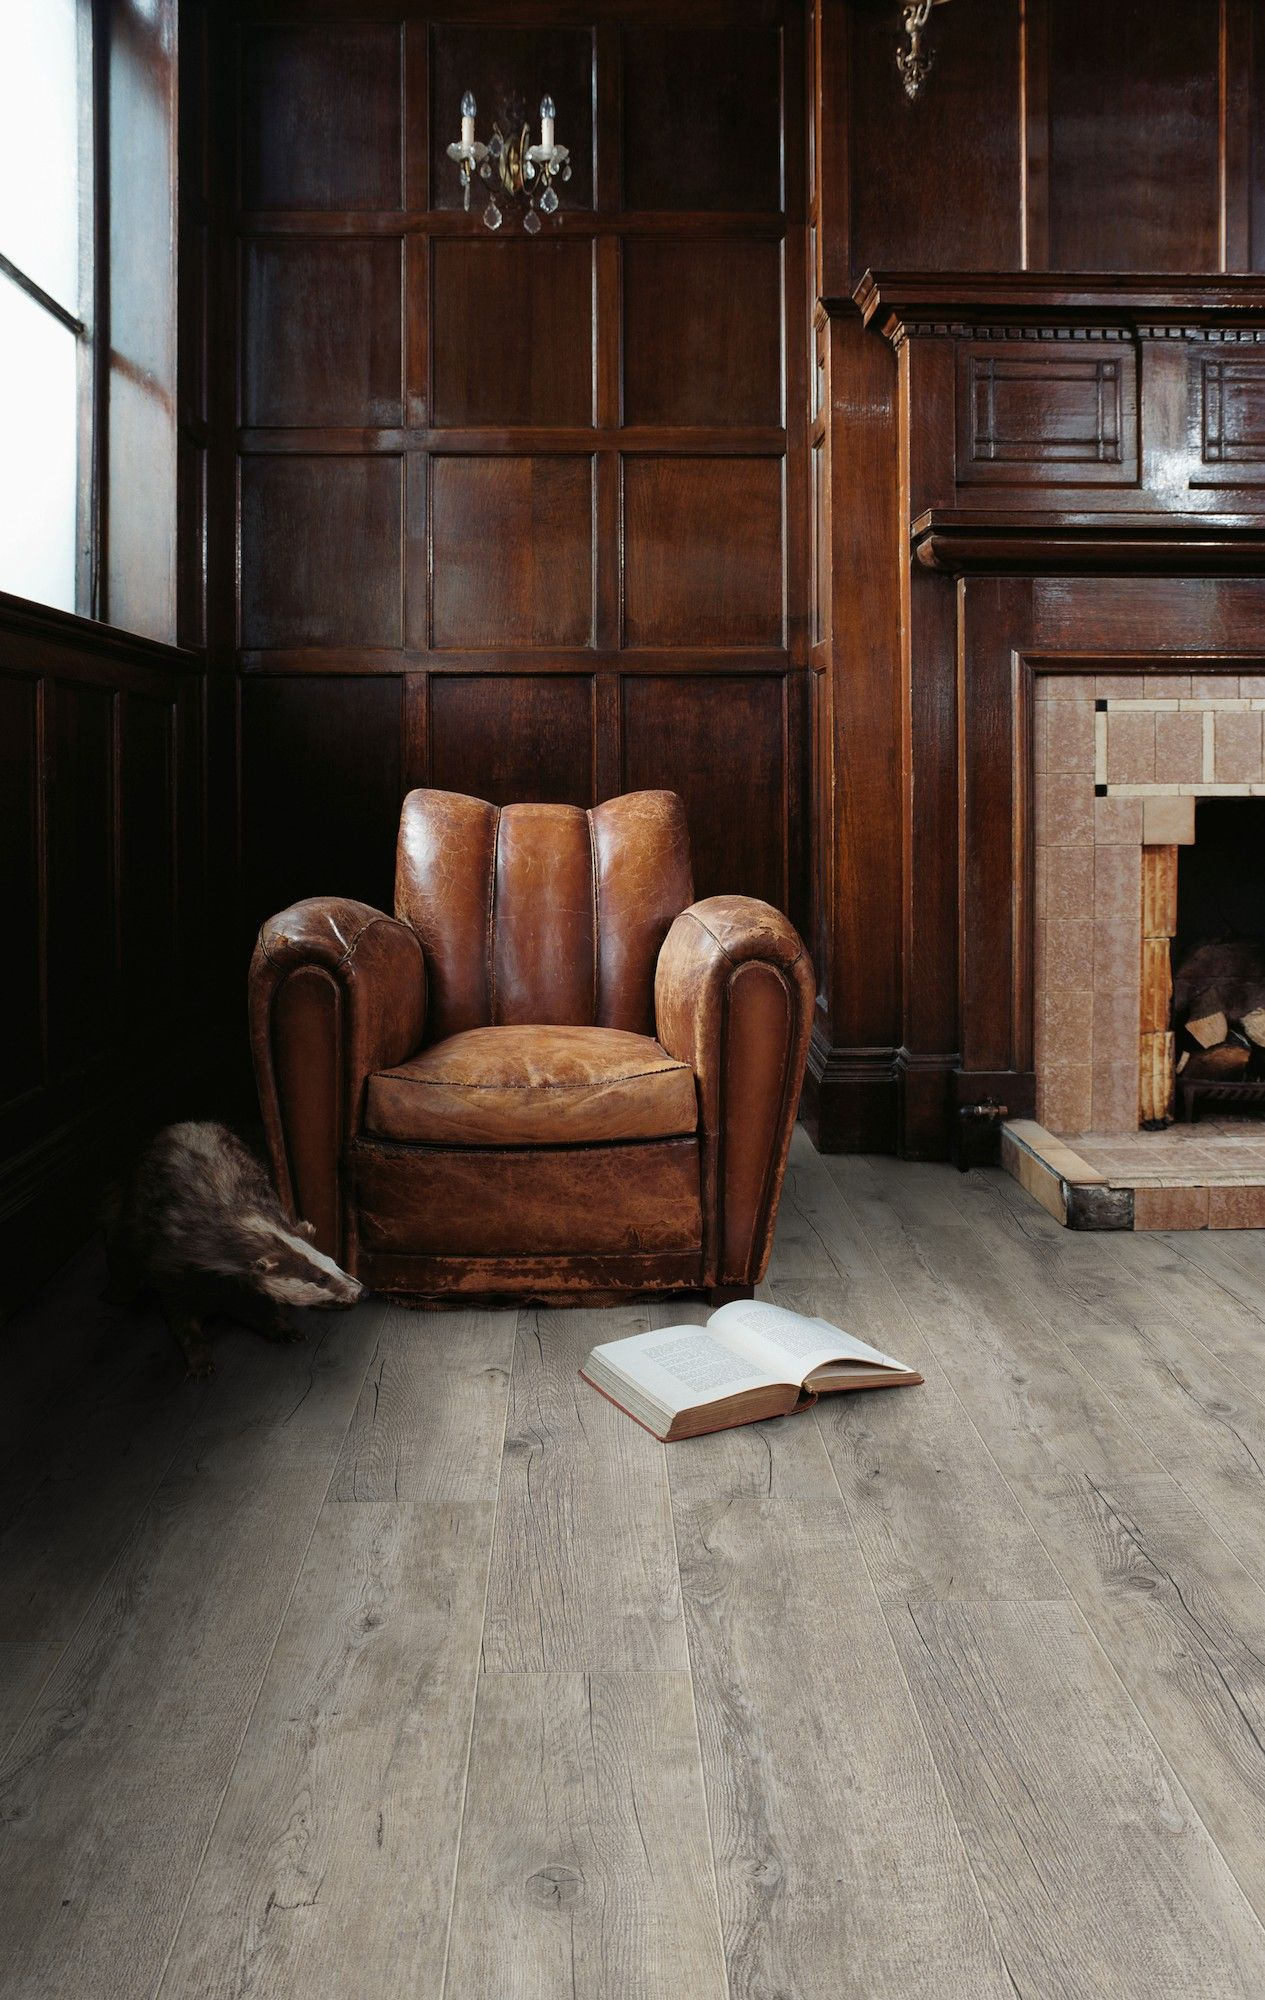 portobello creation 70 clic system by gerflor flooring homedecor http www. Black Bedroom Furniture Sets. Home Design Ideas